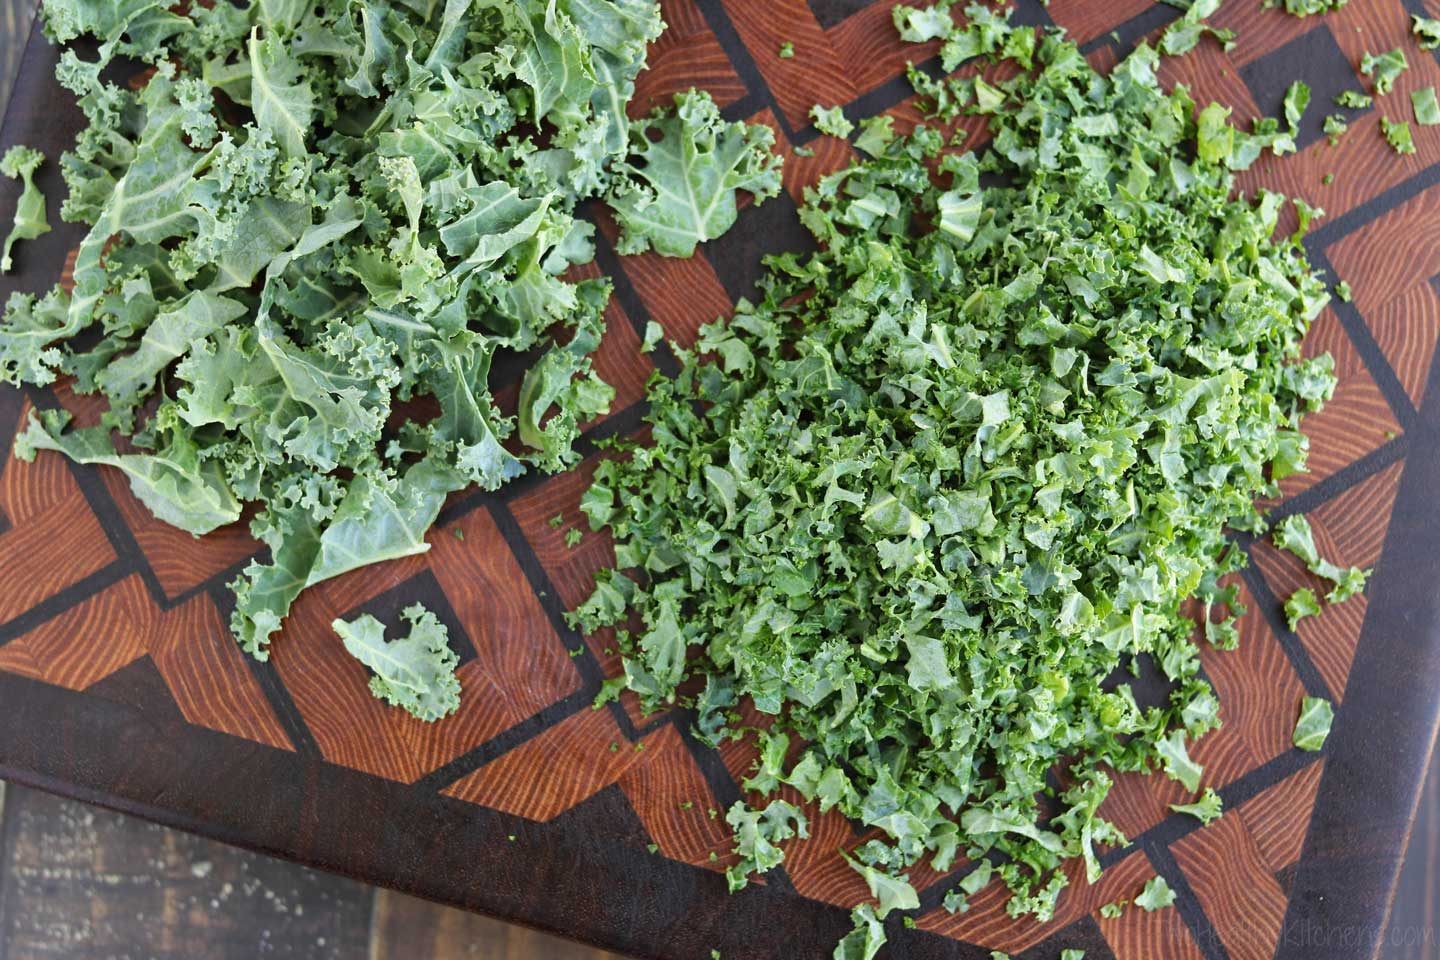 If you want bigger kale leaves in your salad, you may want to consider massaging them first. But the smaller confetti bits on the right are perfect for a kale chopped salad!